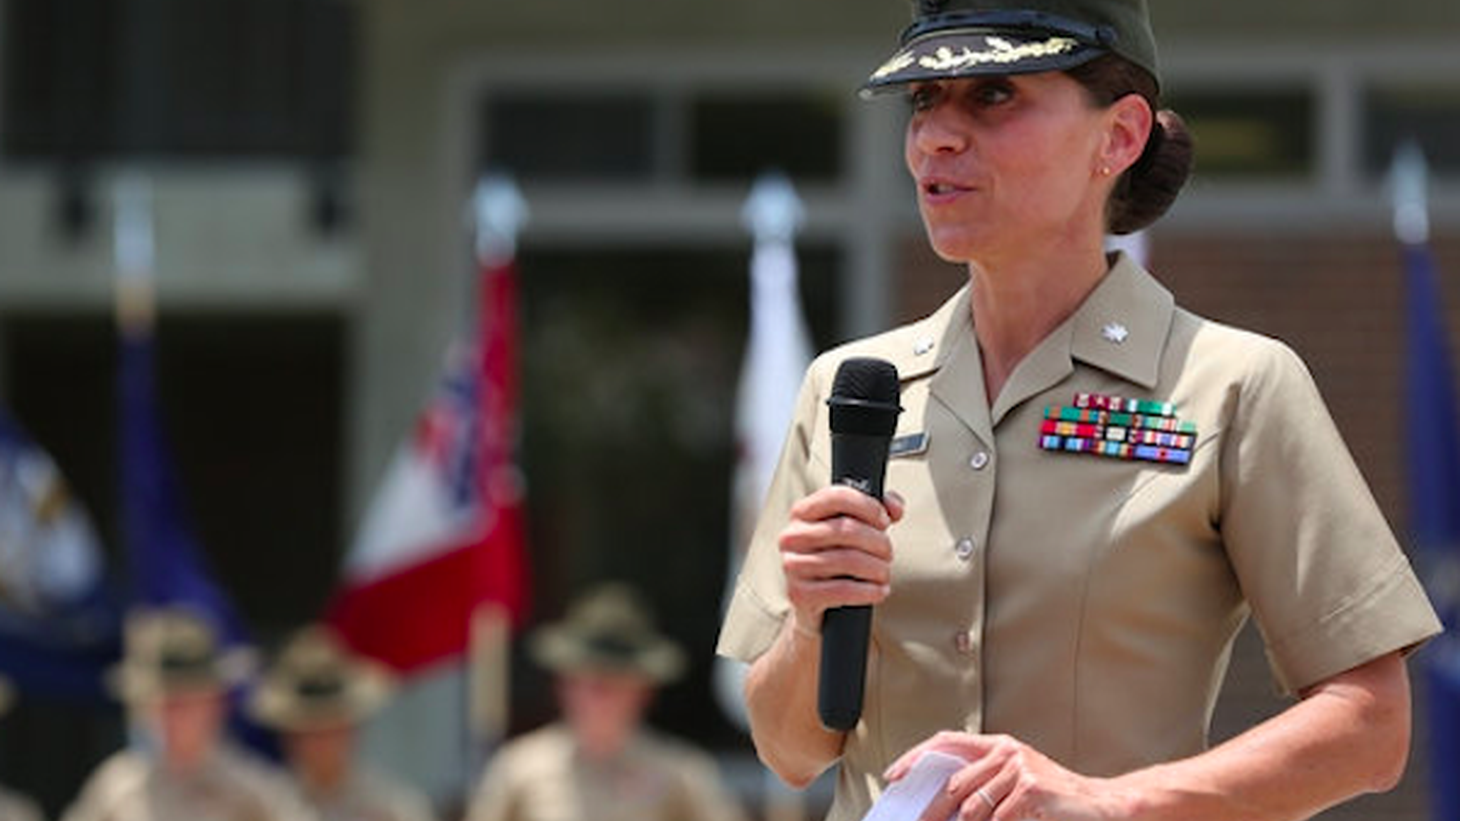 Former Marines officer Kate Germano led the military's only all-female recruit battalion. In one year, she turned a demoralized and underperforming group of women into qualified Marines. Then she got fired.